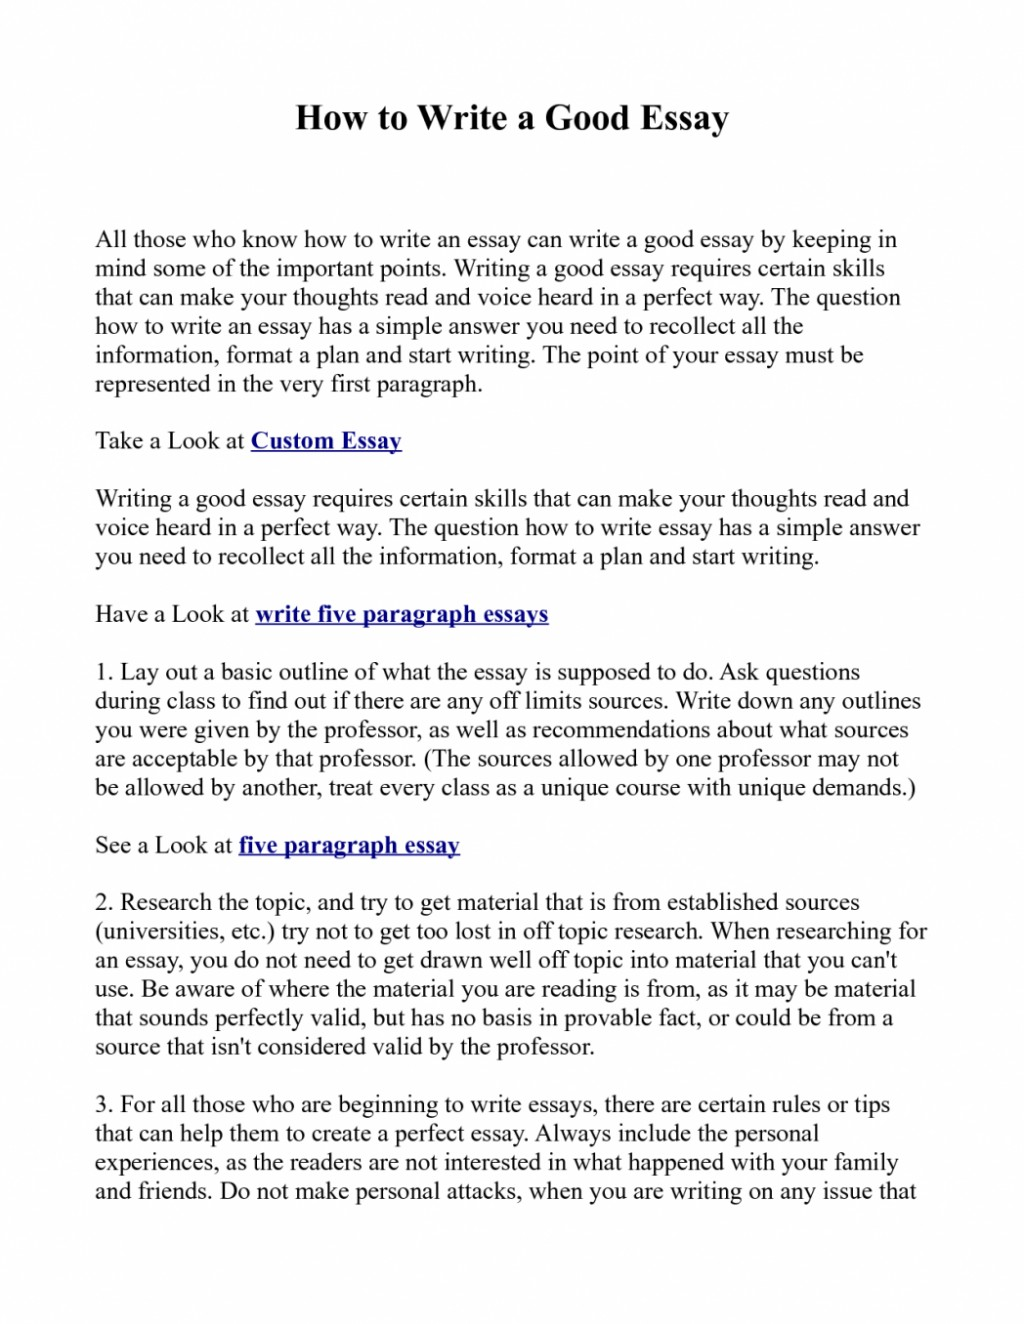 010 Essay Example Writing Good College Essays How To Write An Excellent The Start About Yourself Examples Ex1id Off Application Hook Prompt Failure Your Background Awesome A Sentence For Introduction Large